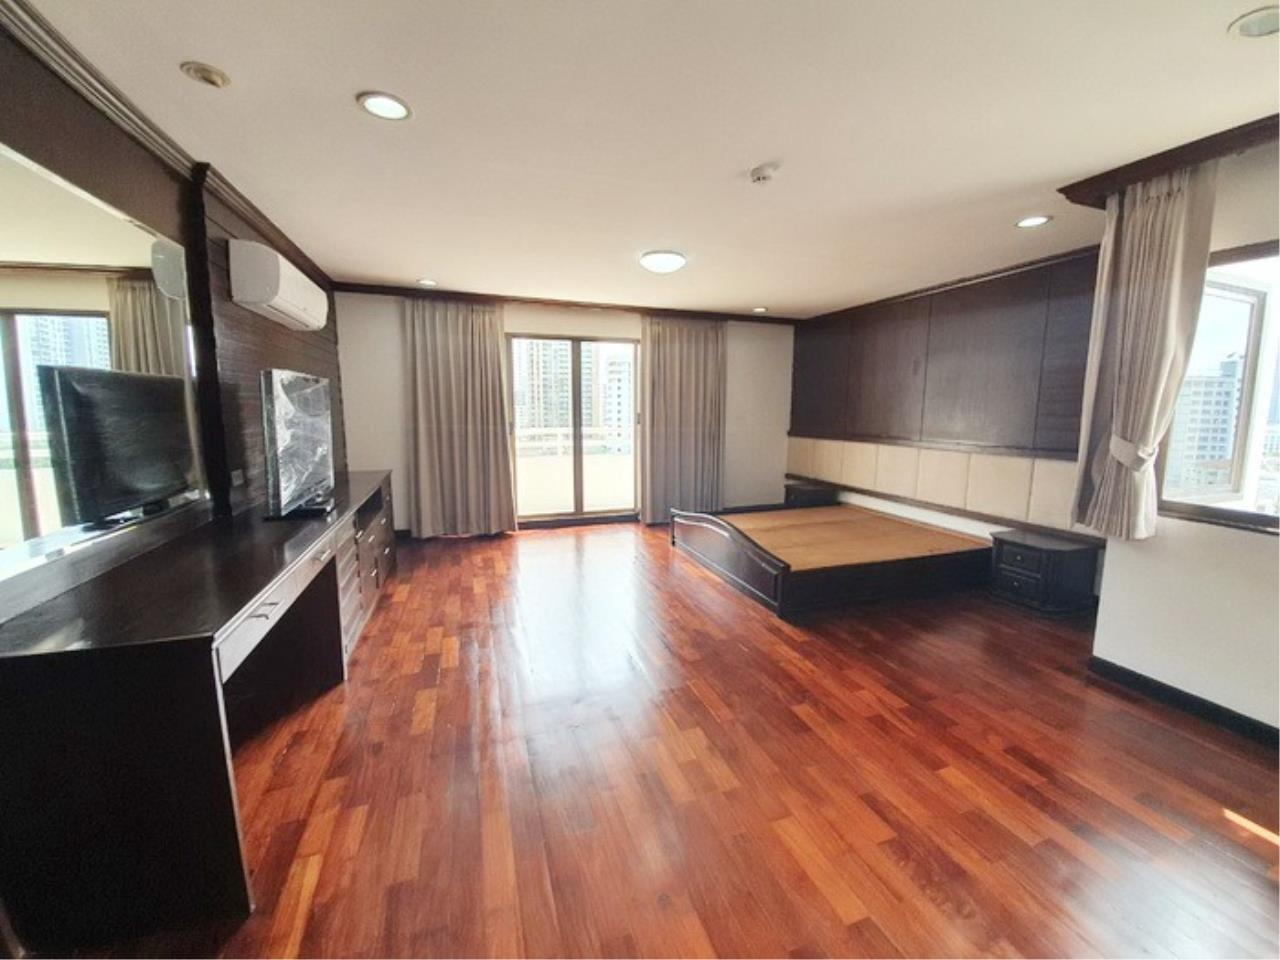 Bestbkkcondos Agency's regent on the park 1 - 250 Sq.M - for rent: 60000 THB - 3 bedrooms,3 bathrooms 6